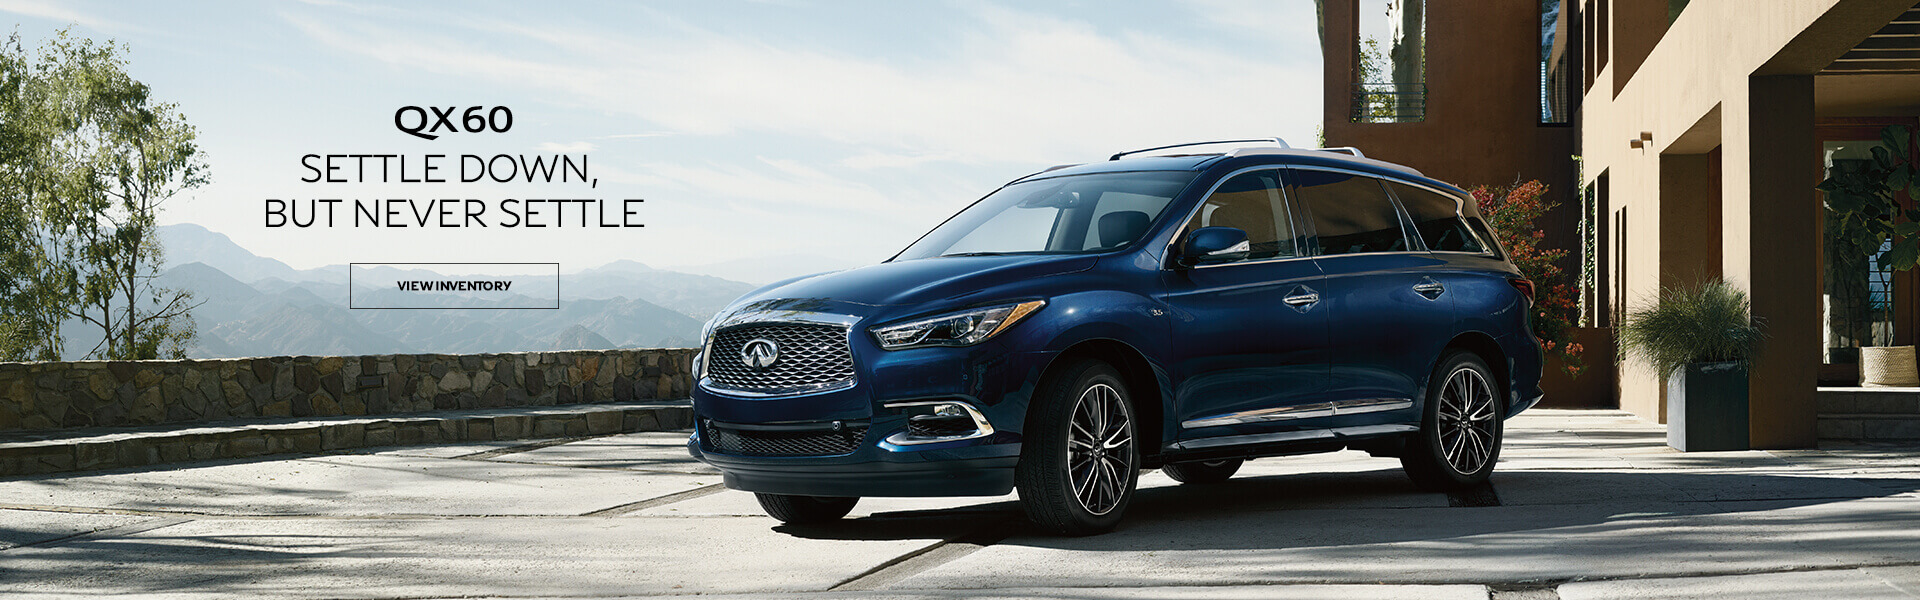 Infiniti Dealership Columbus Ohio >> Infiniti Of Beachwood New Used Car Dealer Near Cleveland Oh